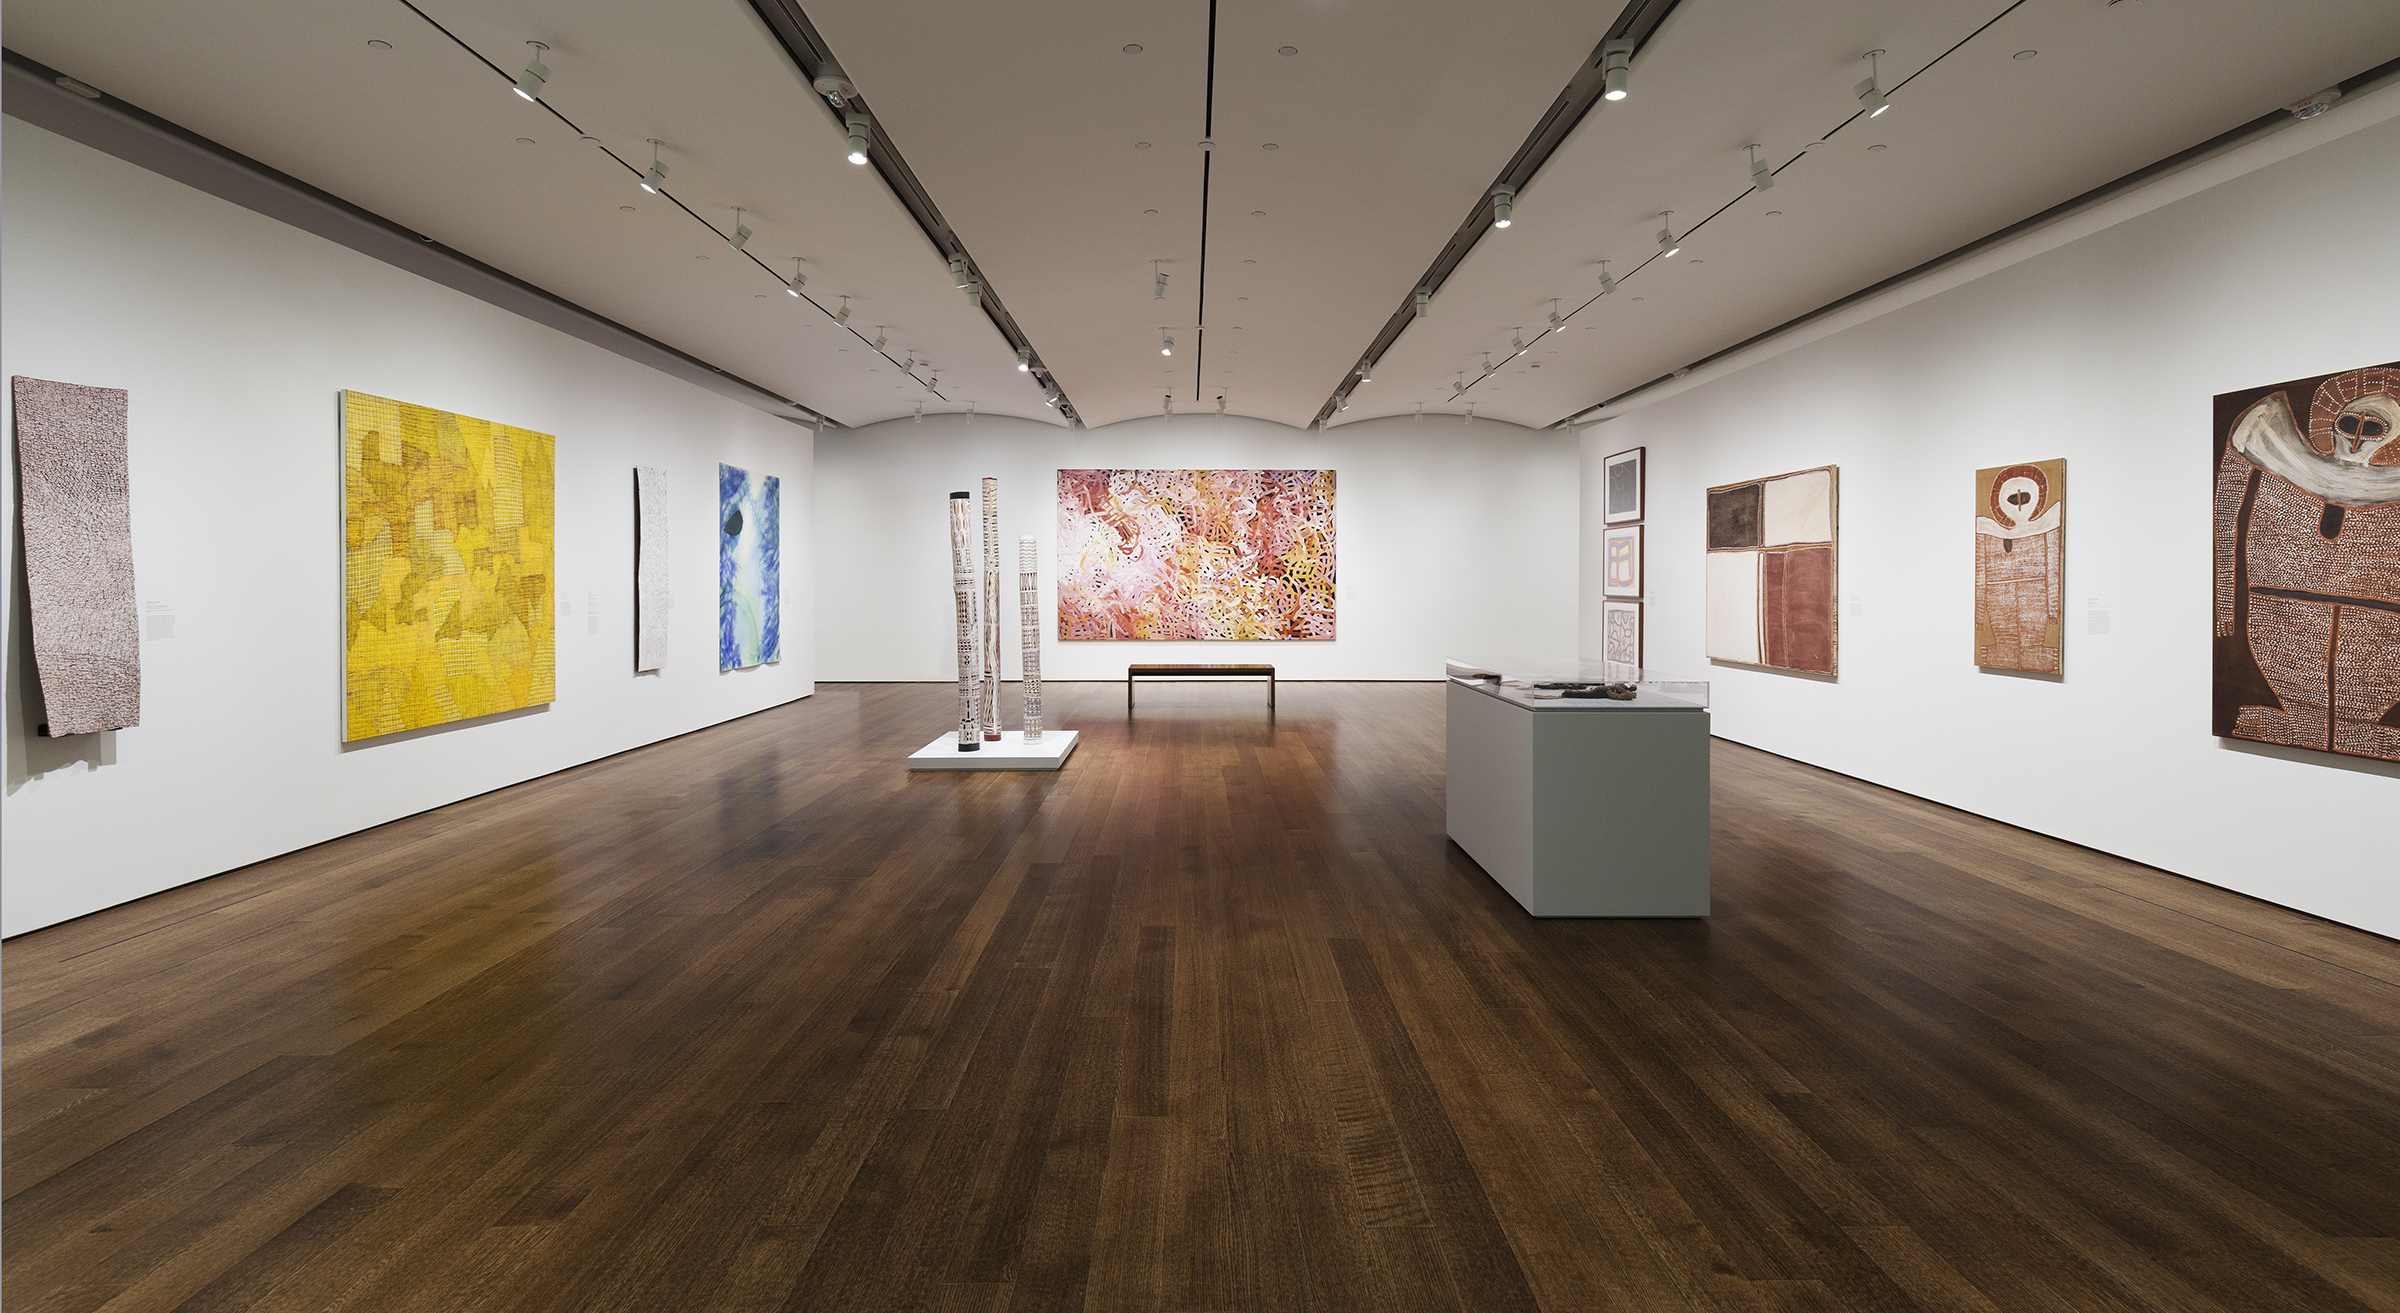 arge gallery with a variety of sculptures and large-scale paintings from Australian indigenous artists.